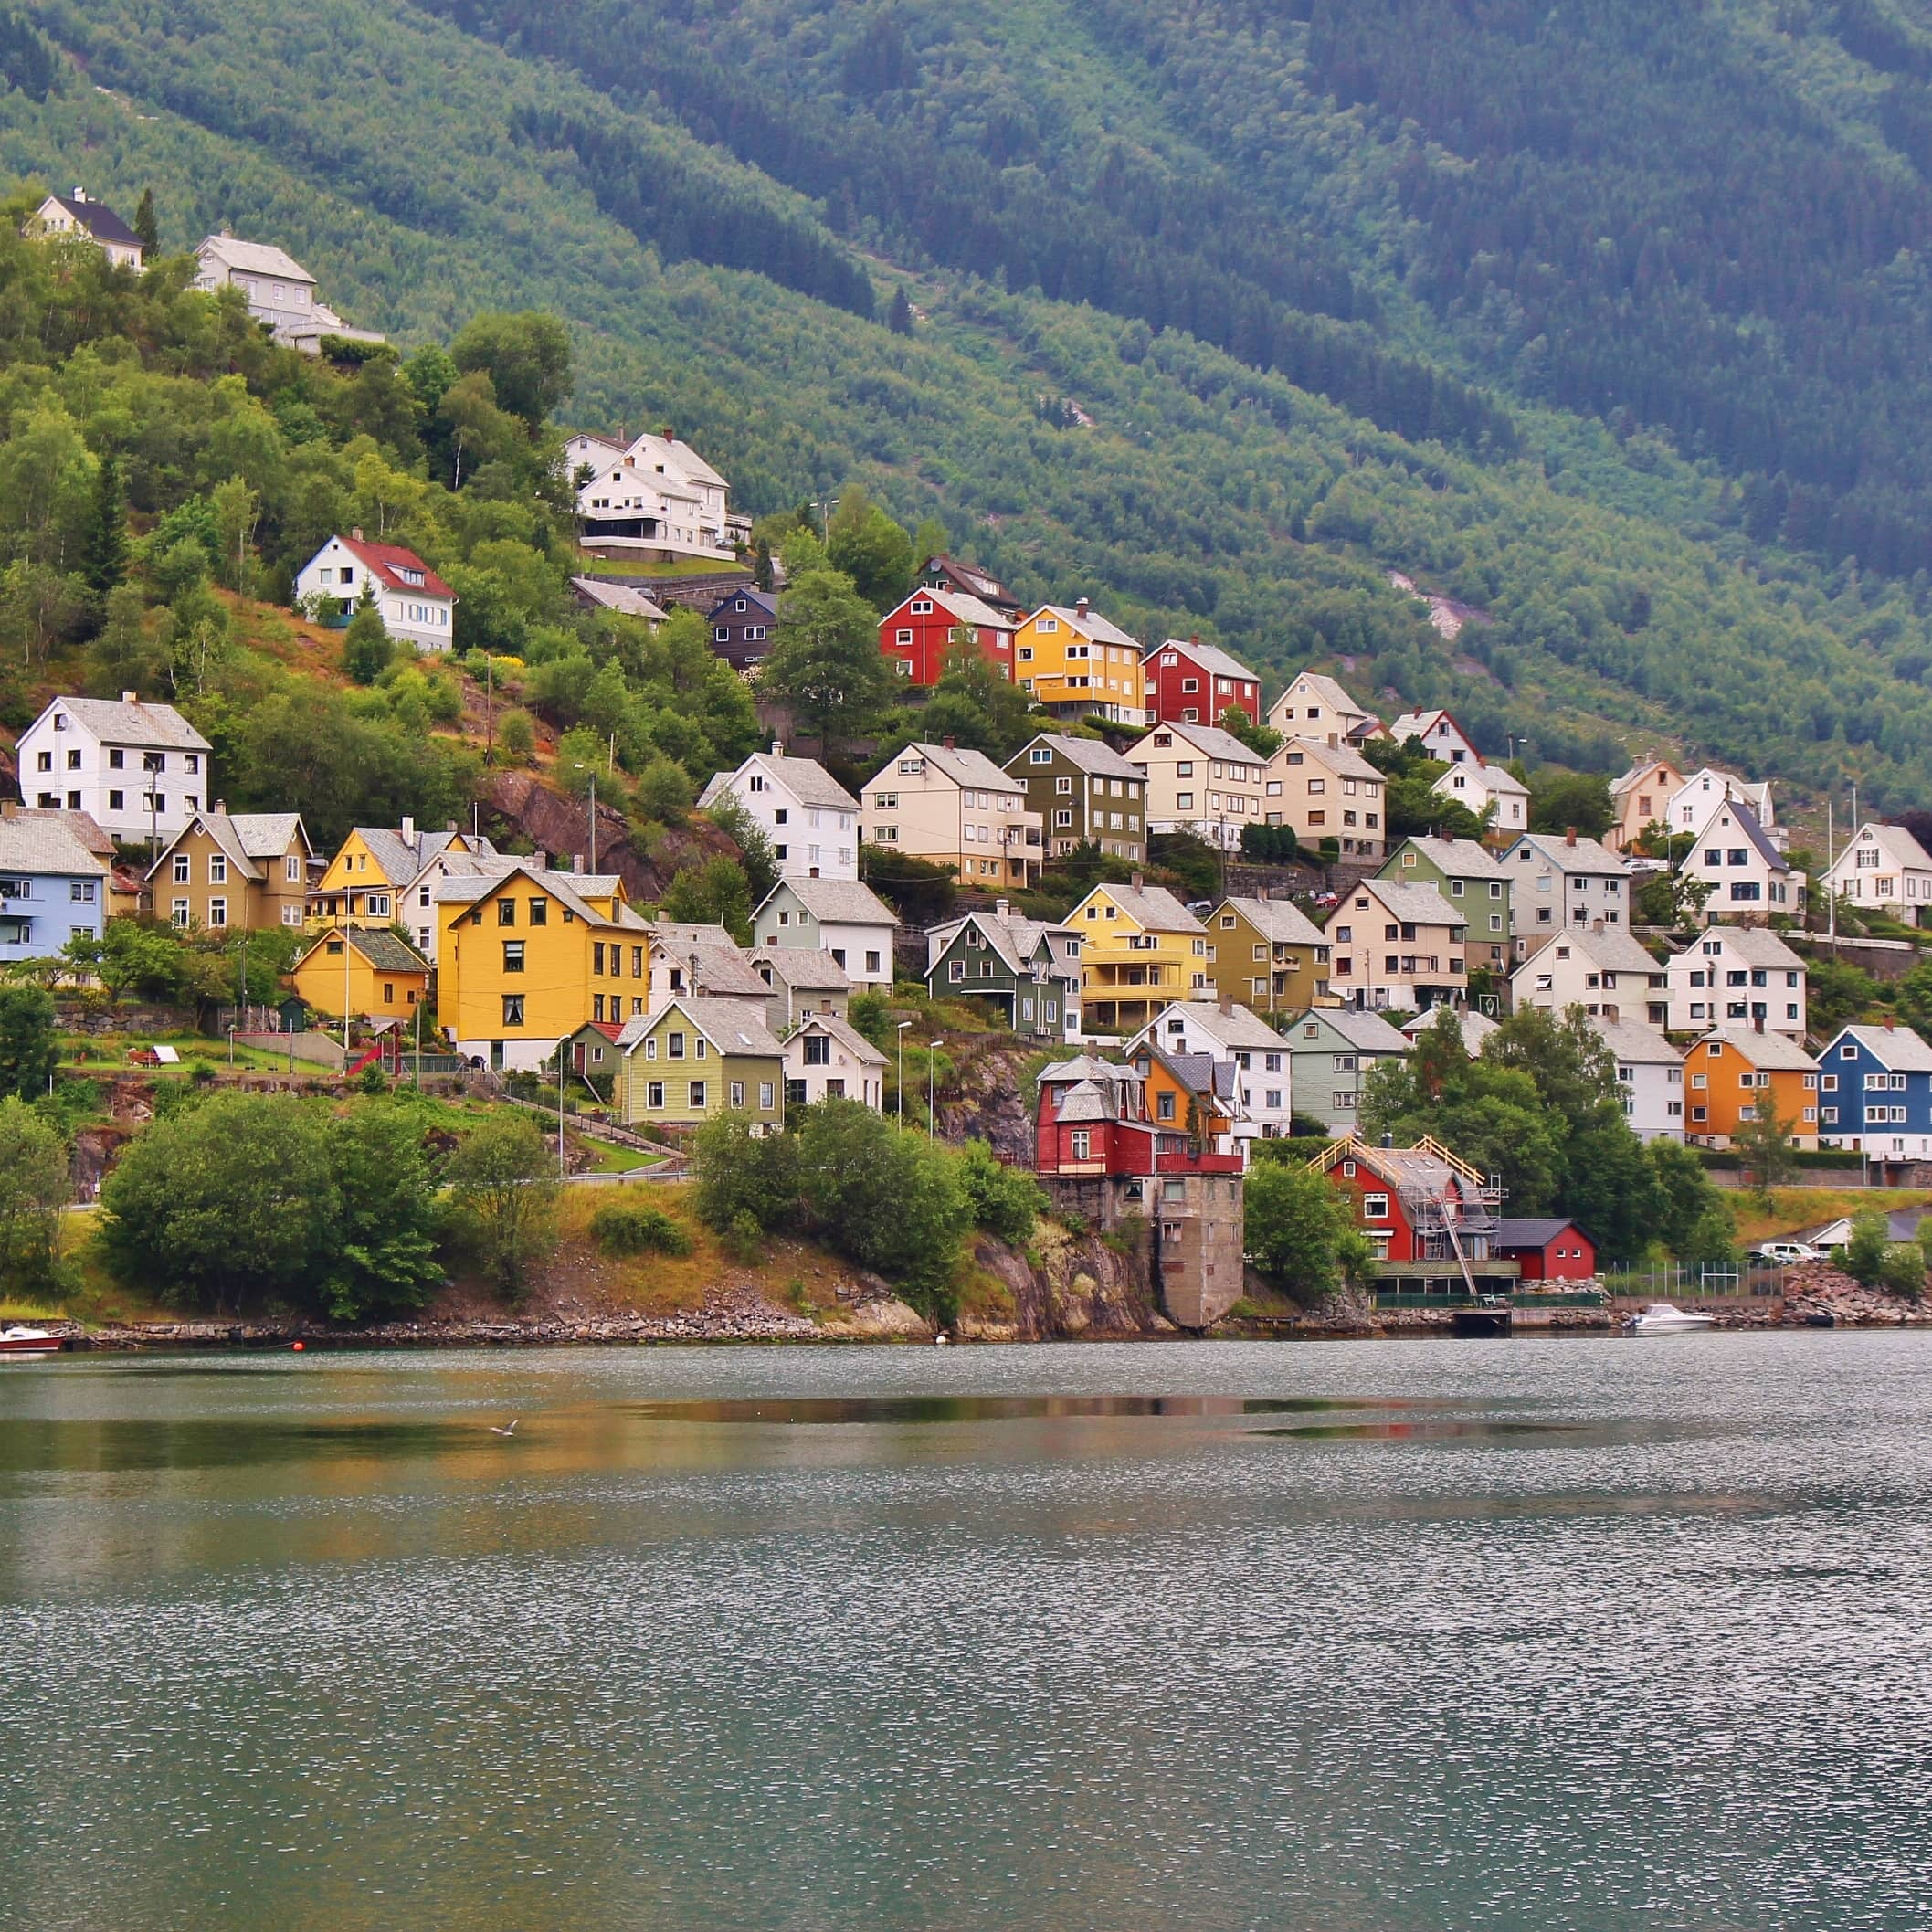 A view of colorful wooden houses in yellow, red, blue, green and white dotted by the water around Hardangerfjord